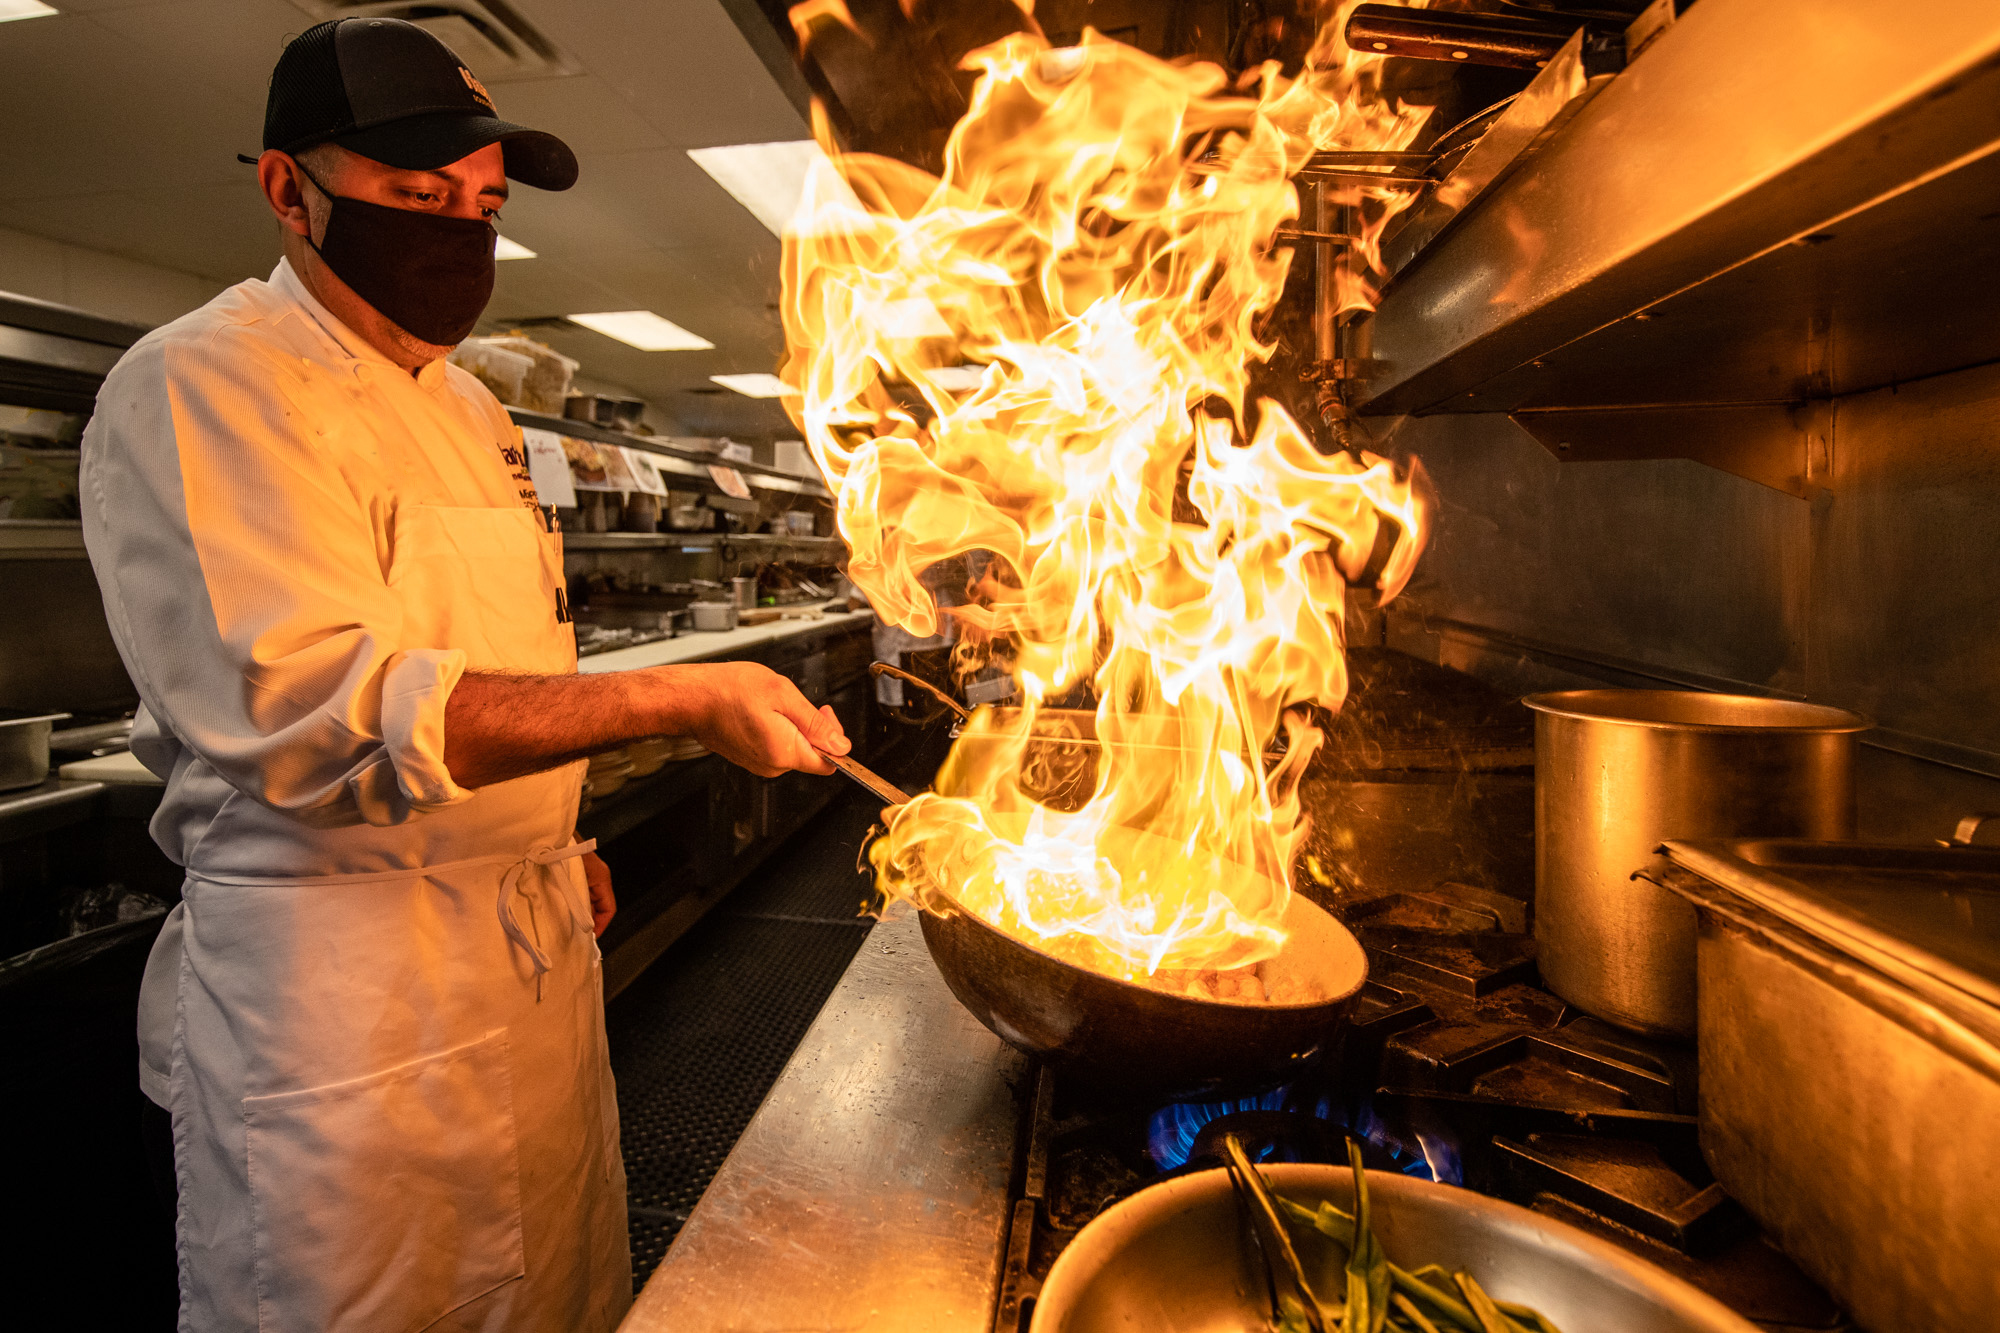 Chef Homero cooking up some fire!